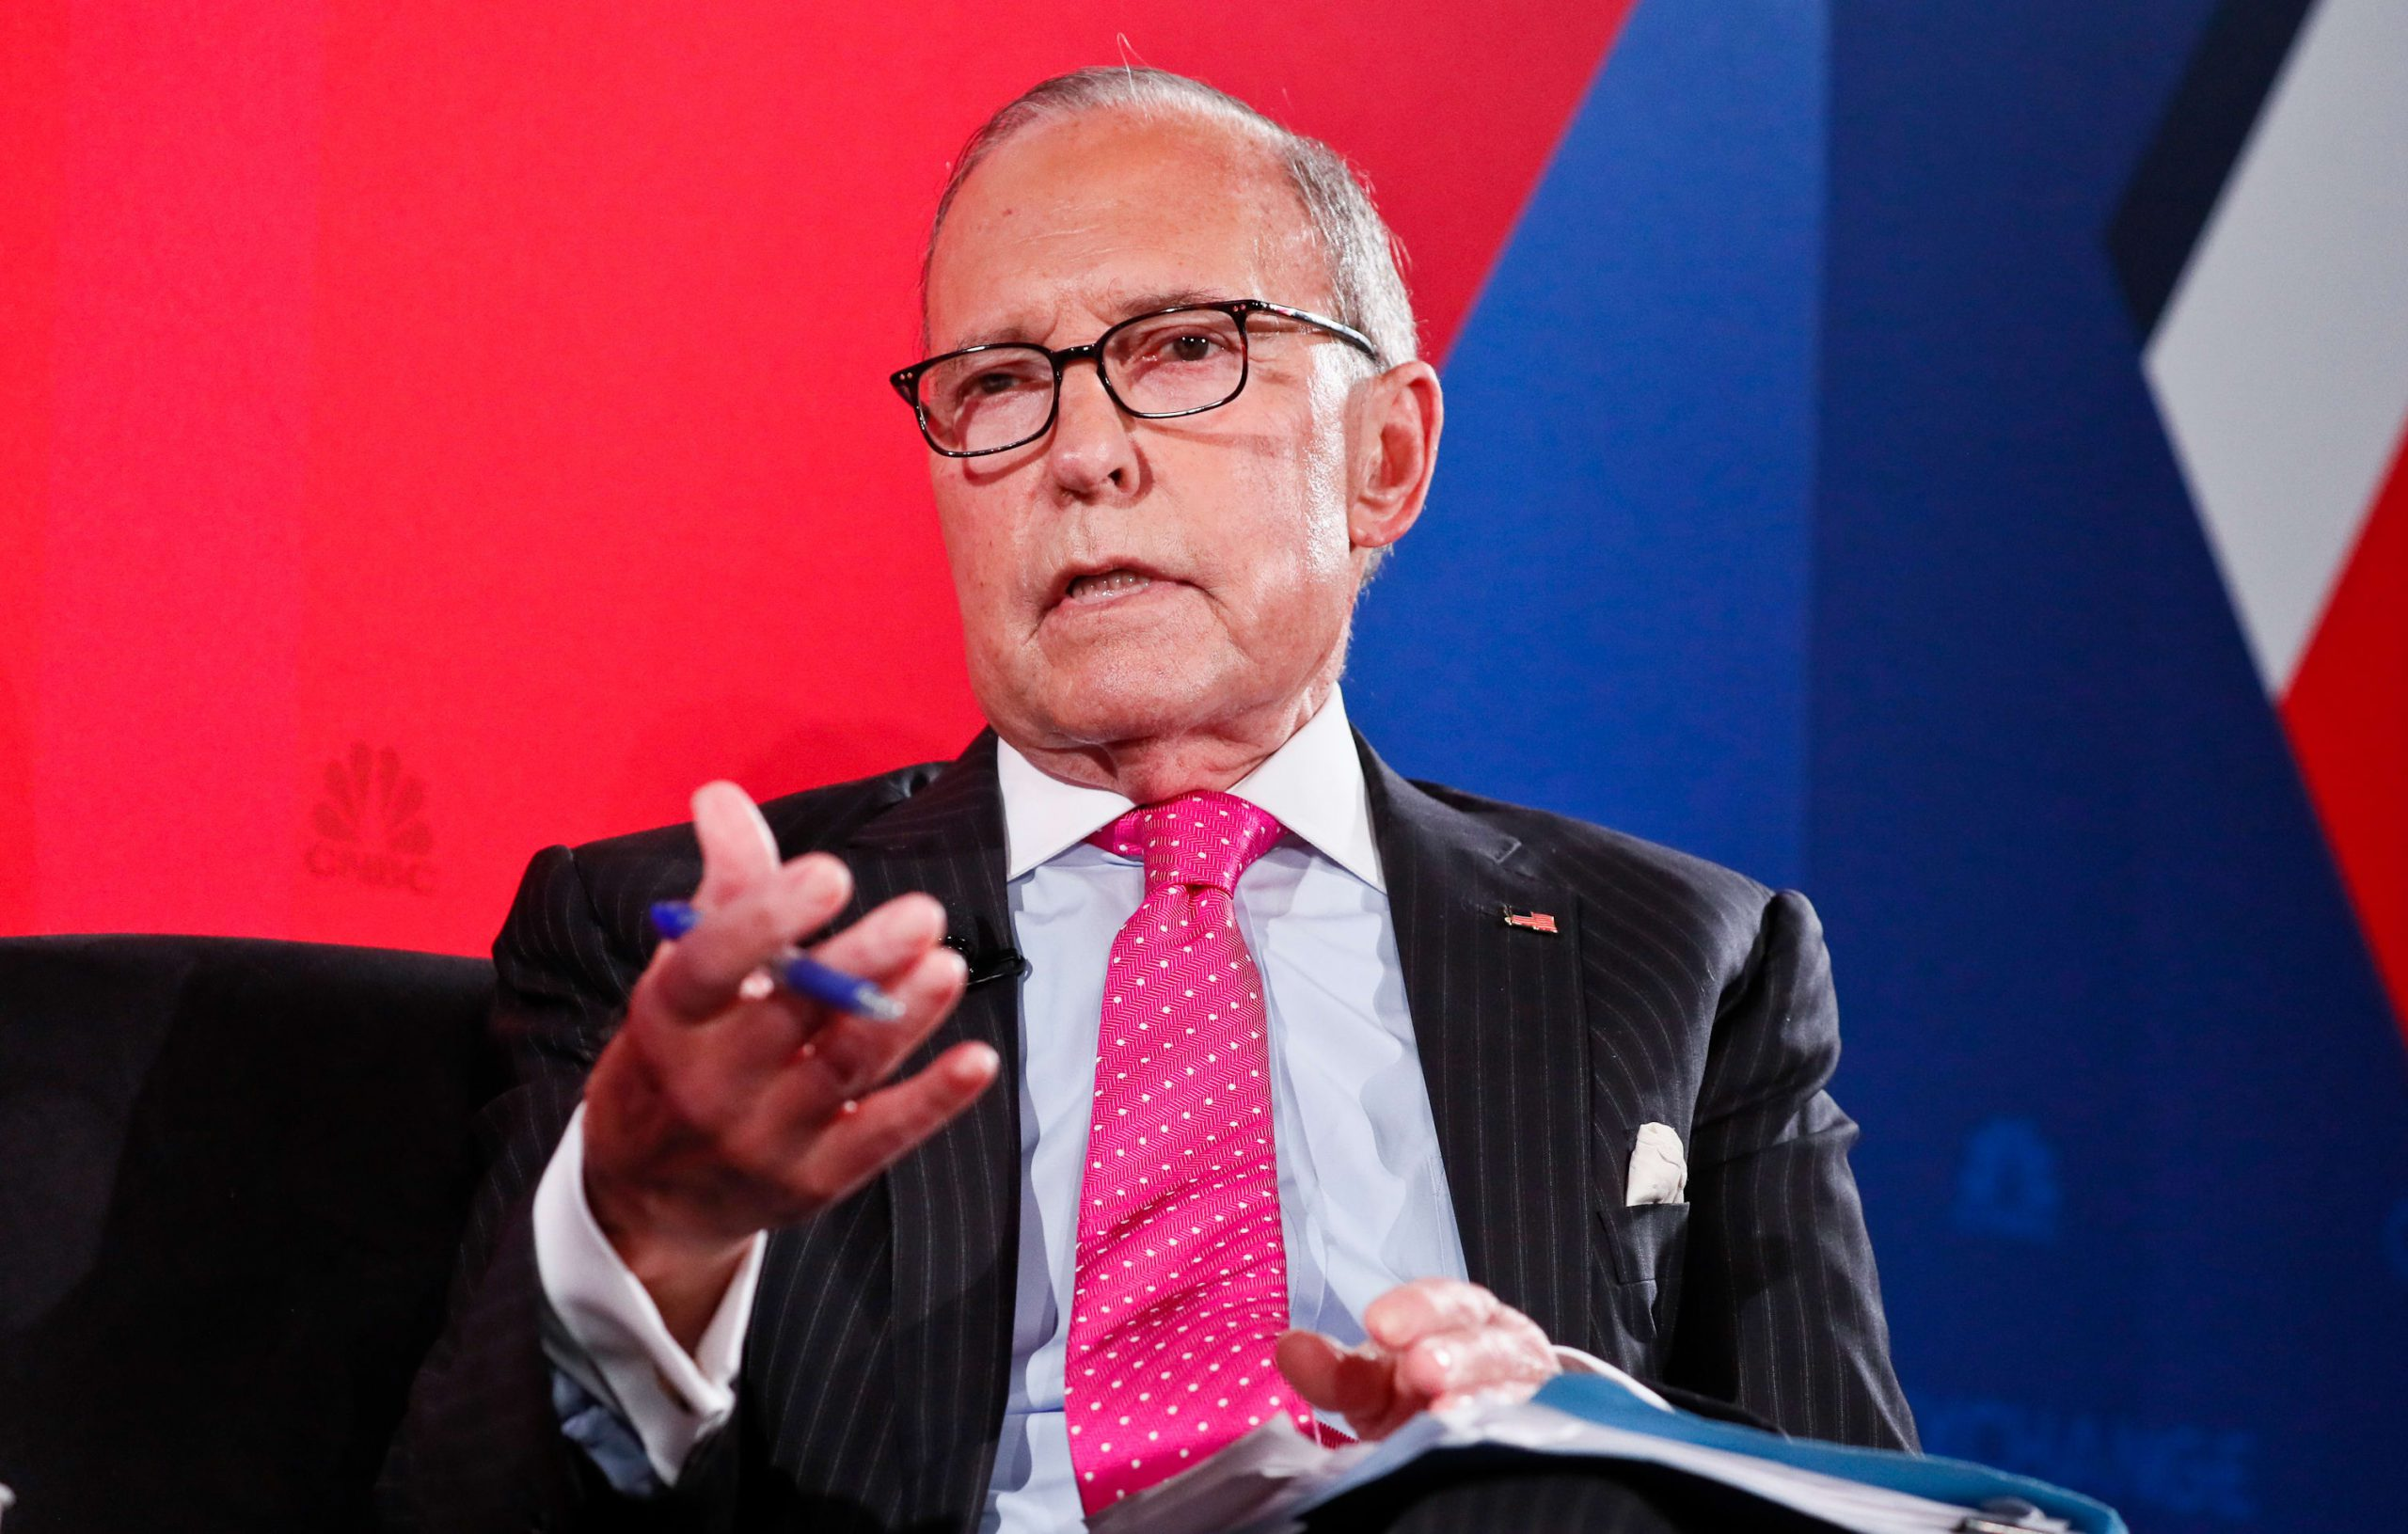 Larry Kudlow: 'We will see if the Chinese stay with their word'